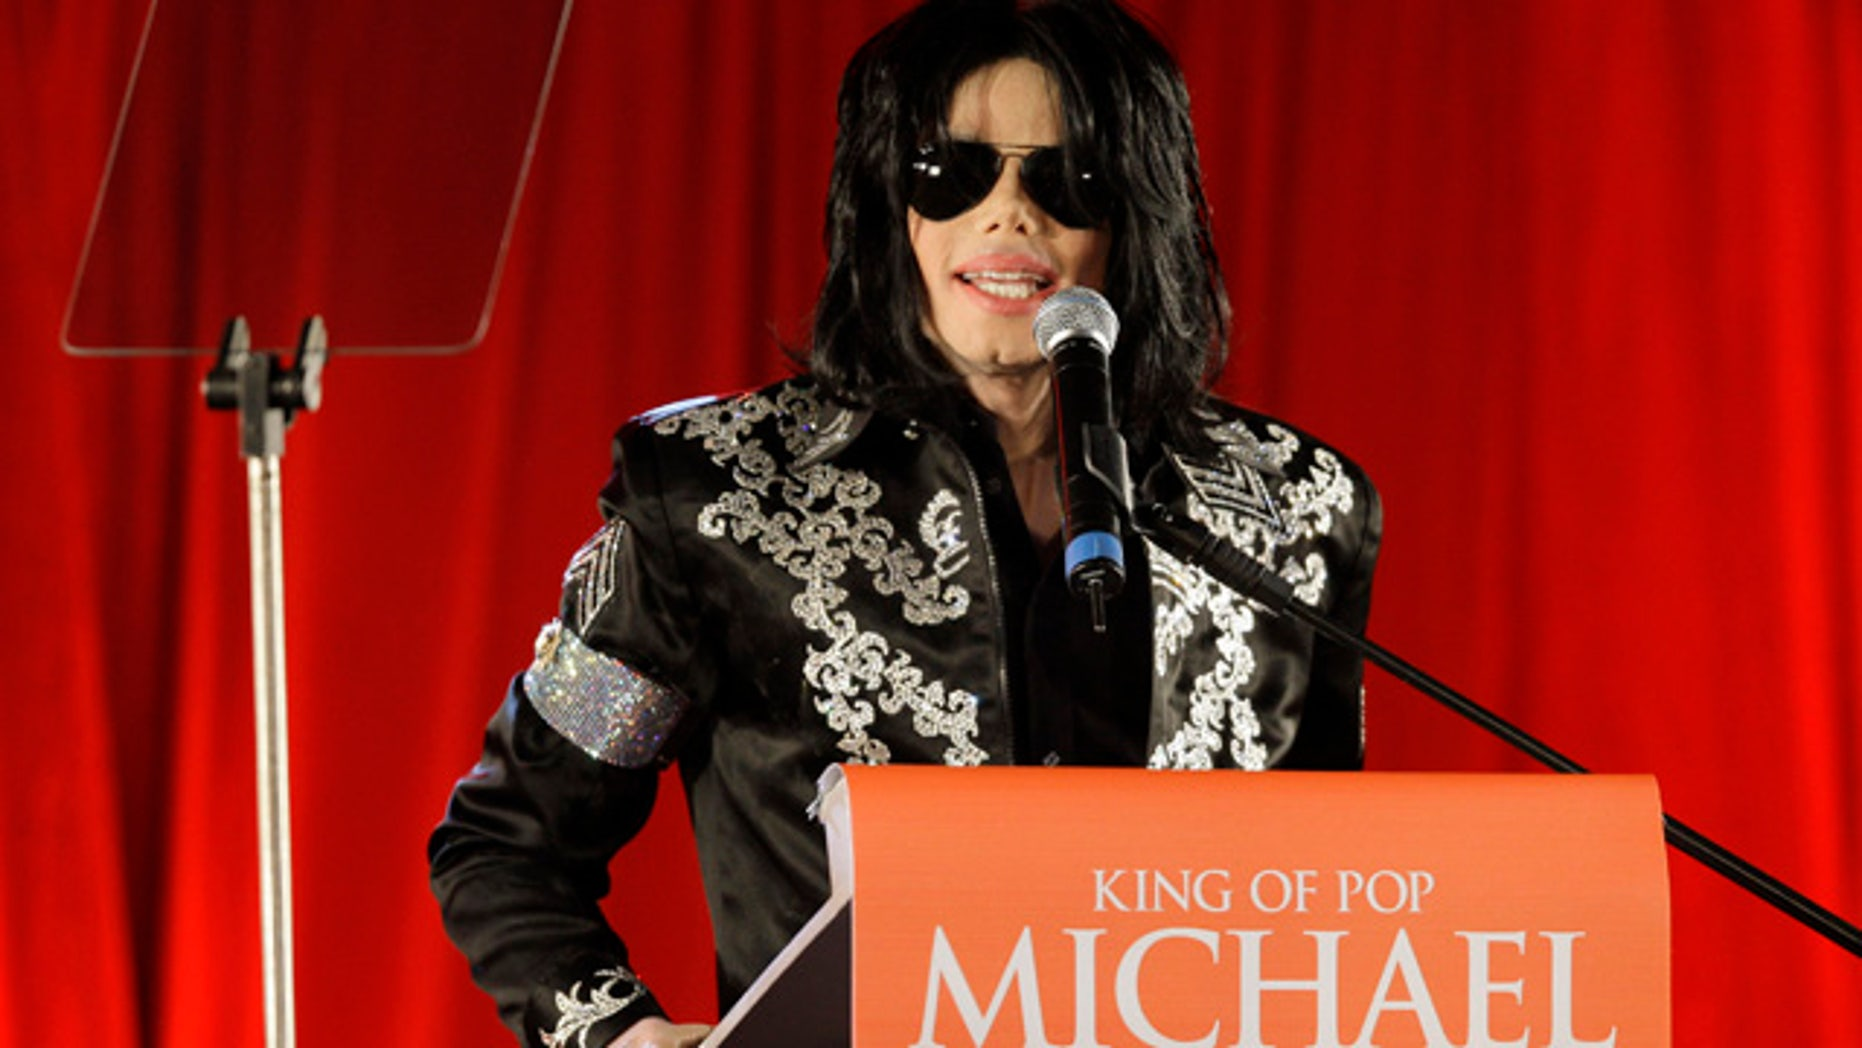 FILE - In this March 5, 2009 file photo, US singer Michael Jackson announces that he is set to play ten live concerts at London's O2 Arena in July (AP Photo/Joel Ryan, File)